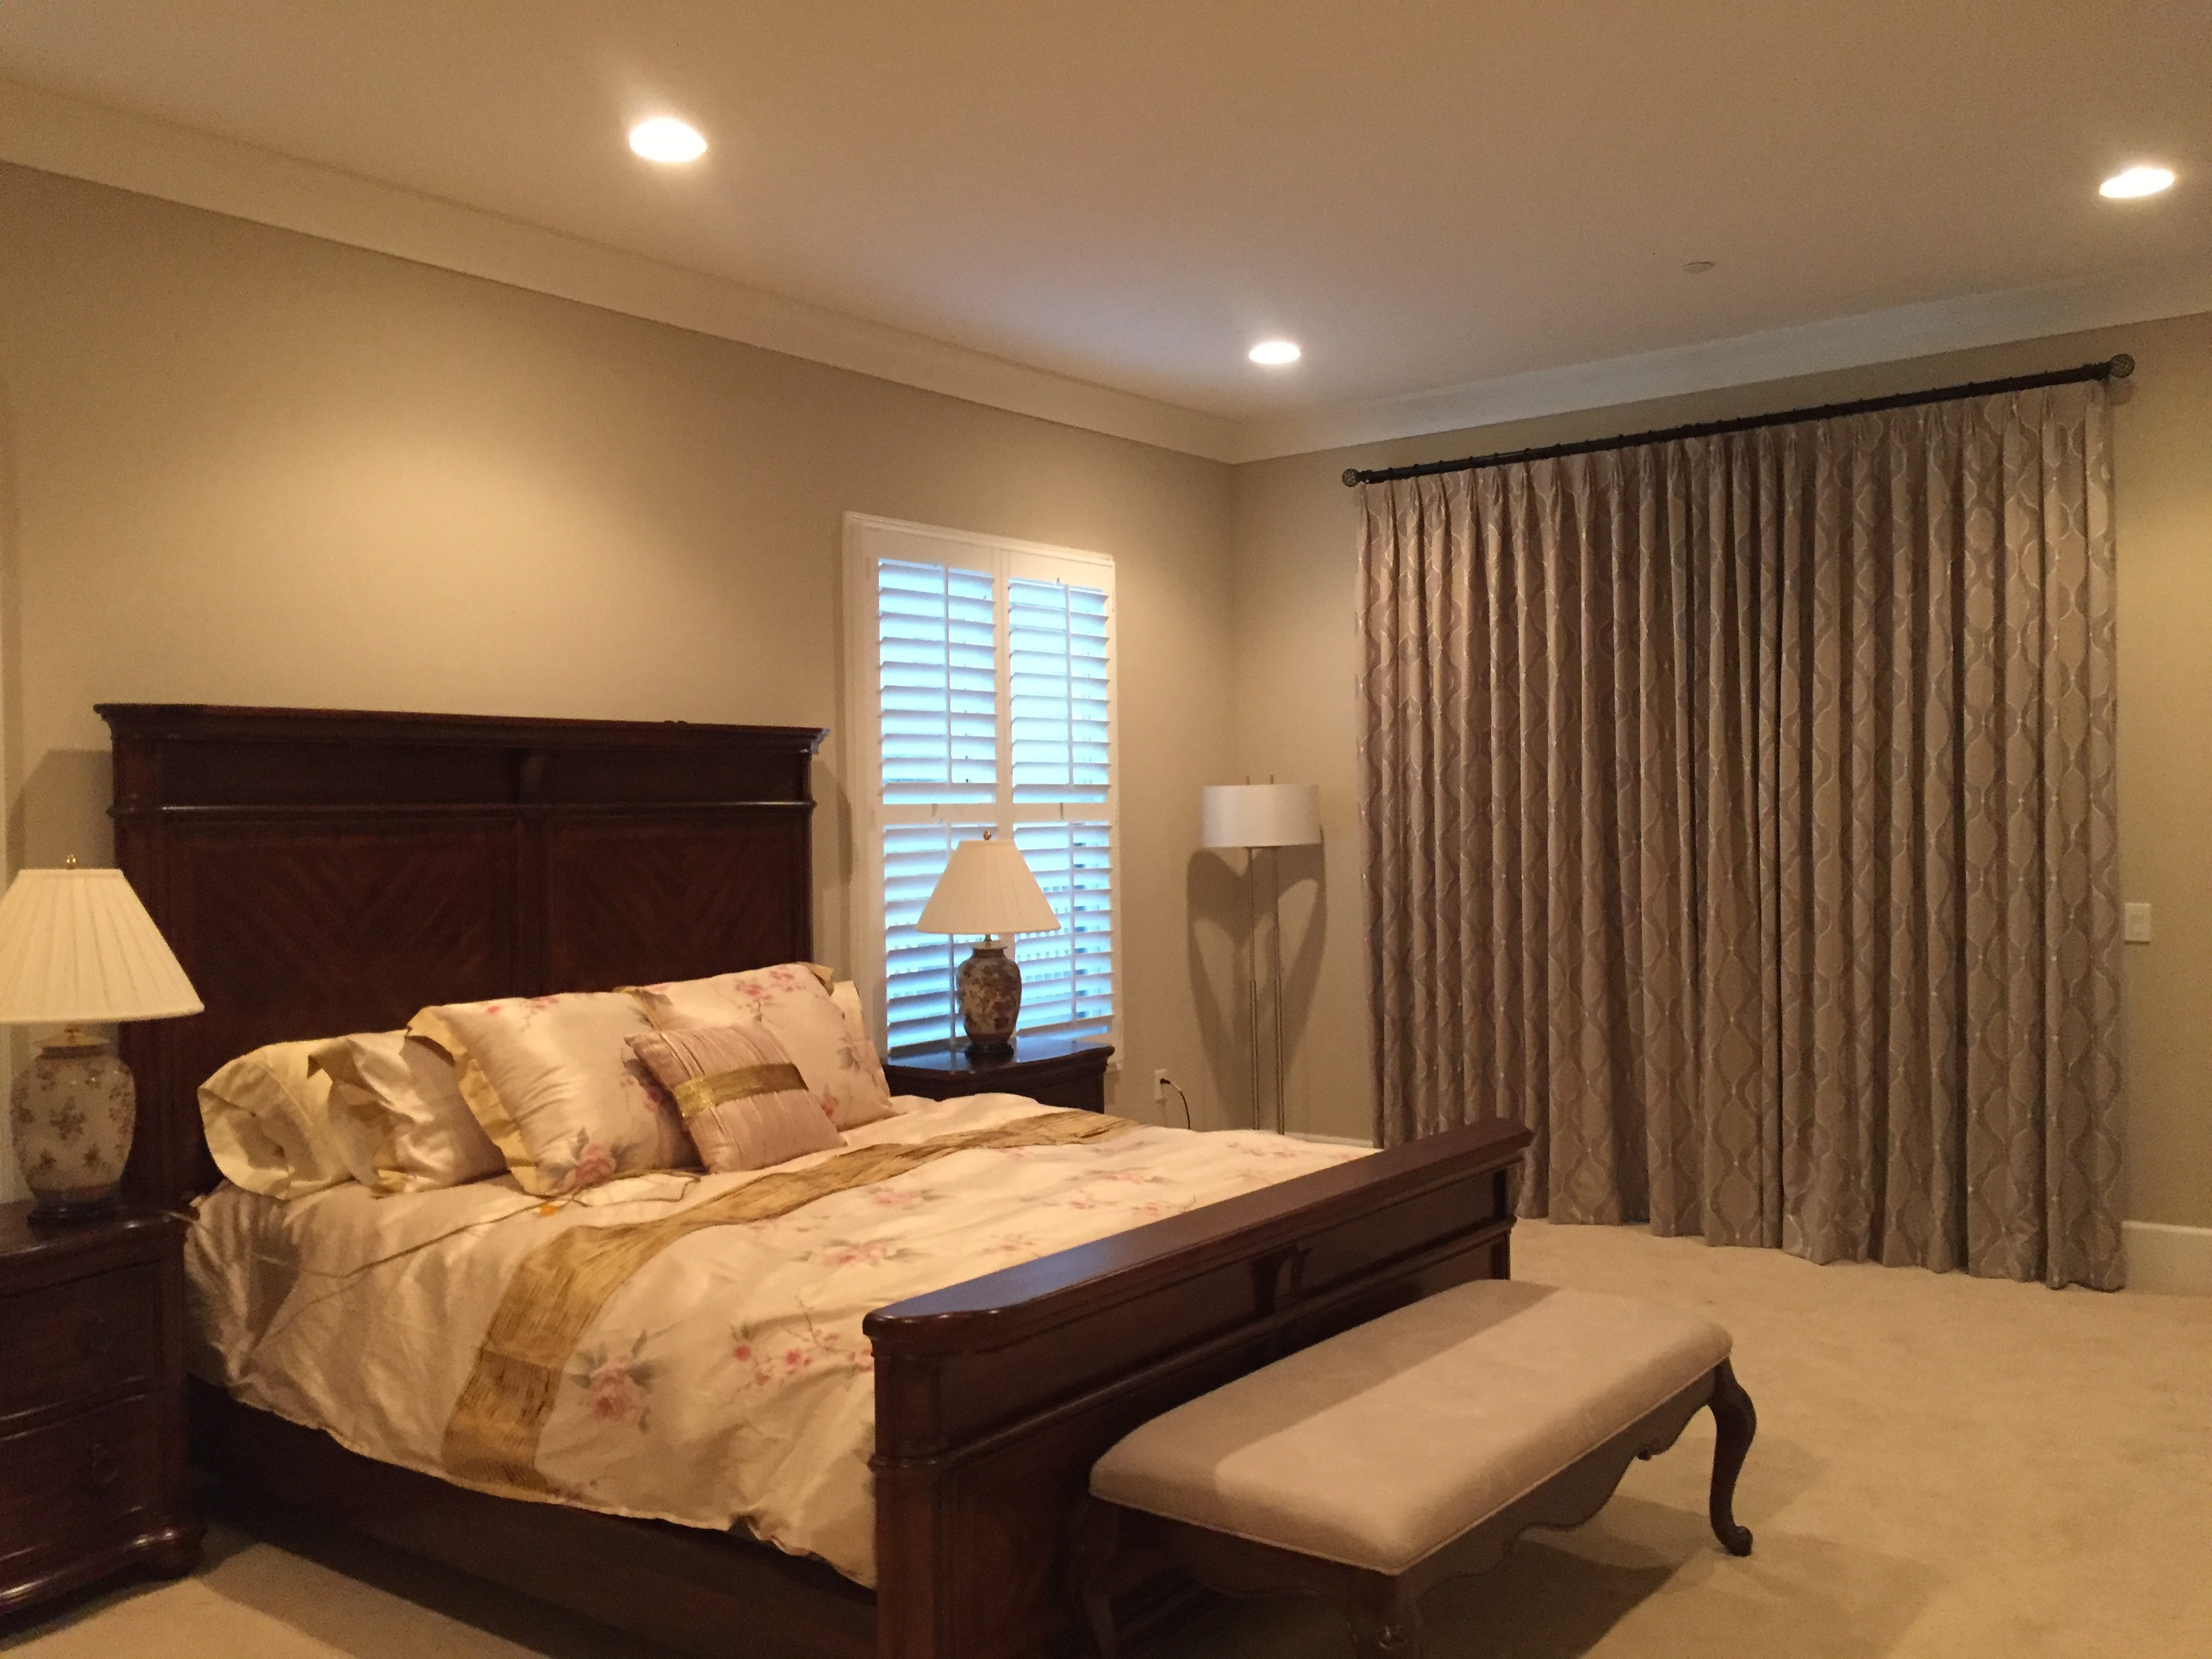 window treatments that allow us to sleep peacefully